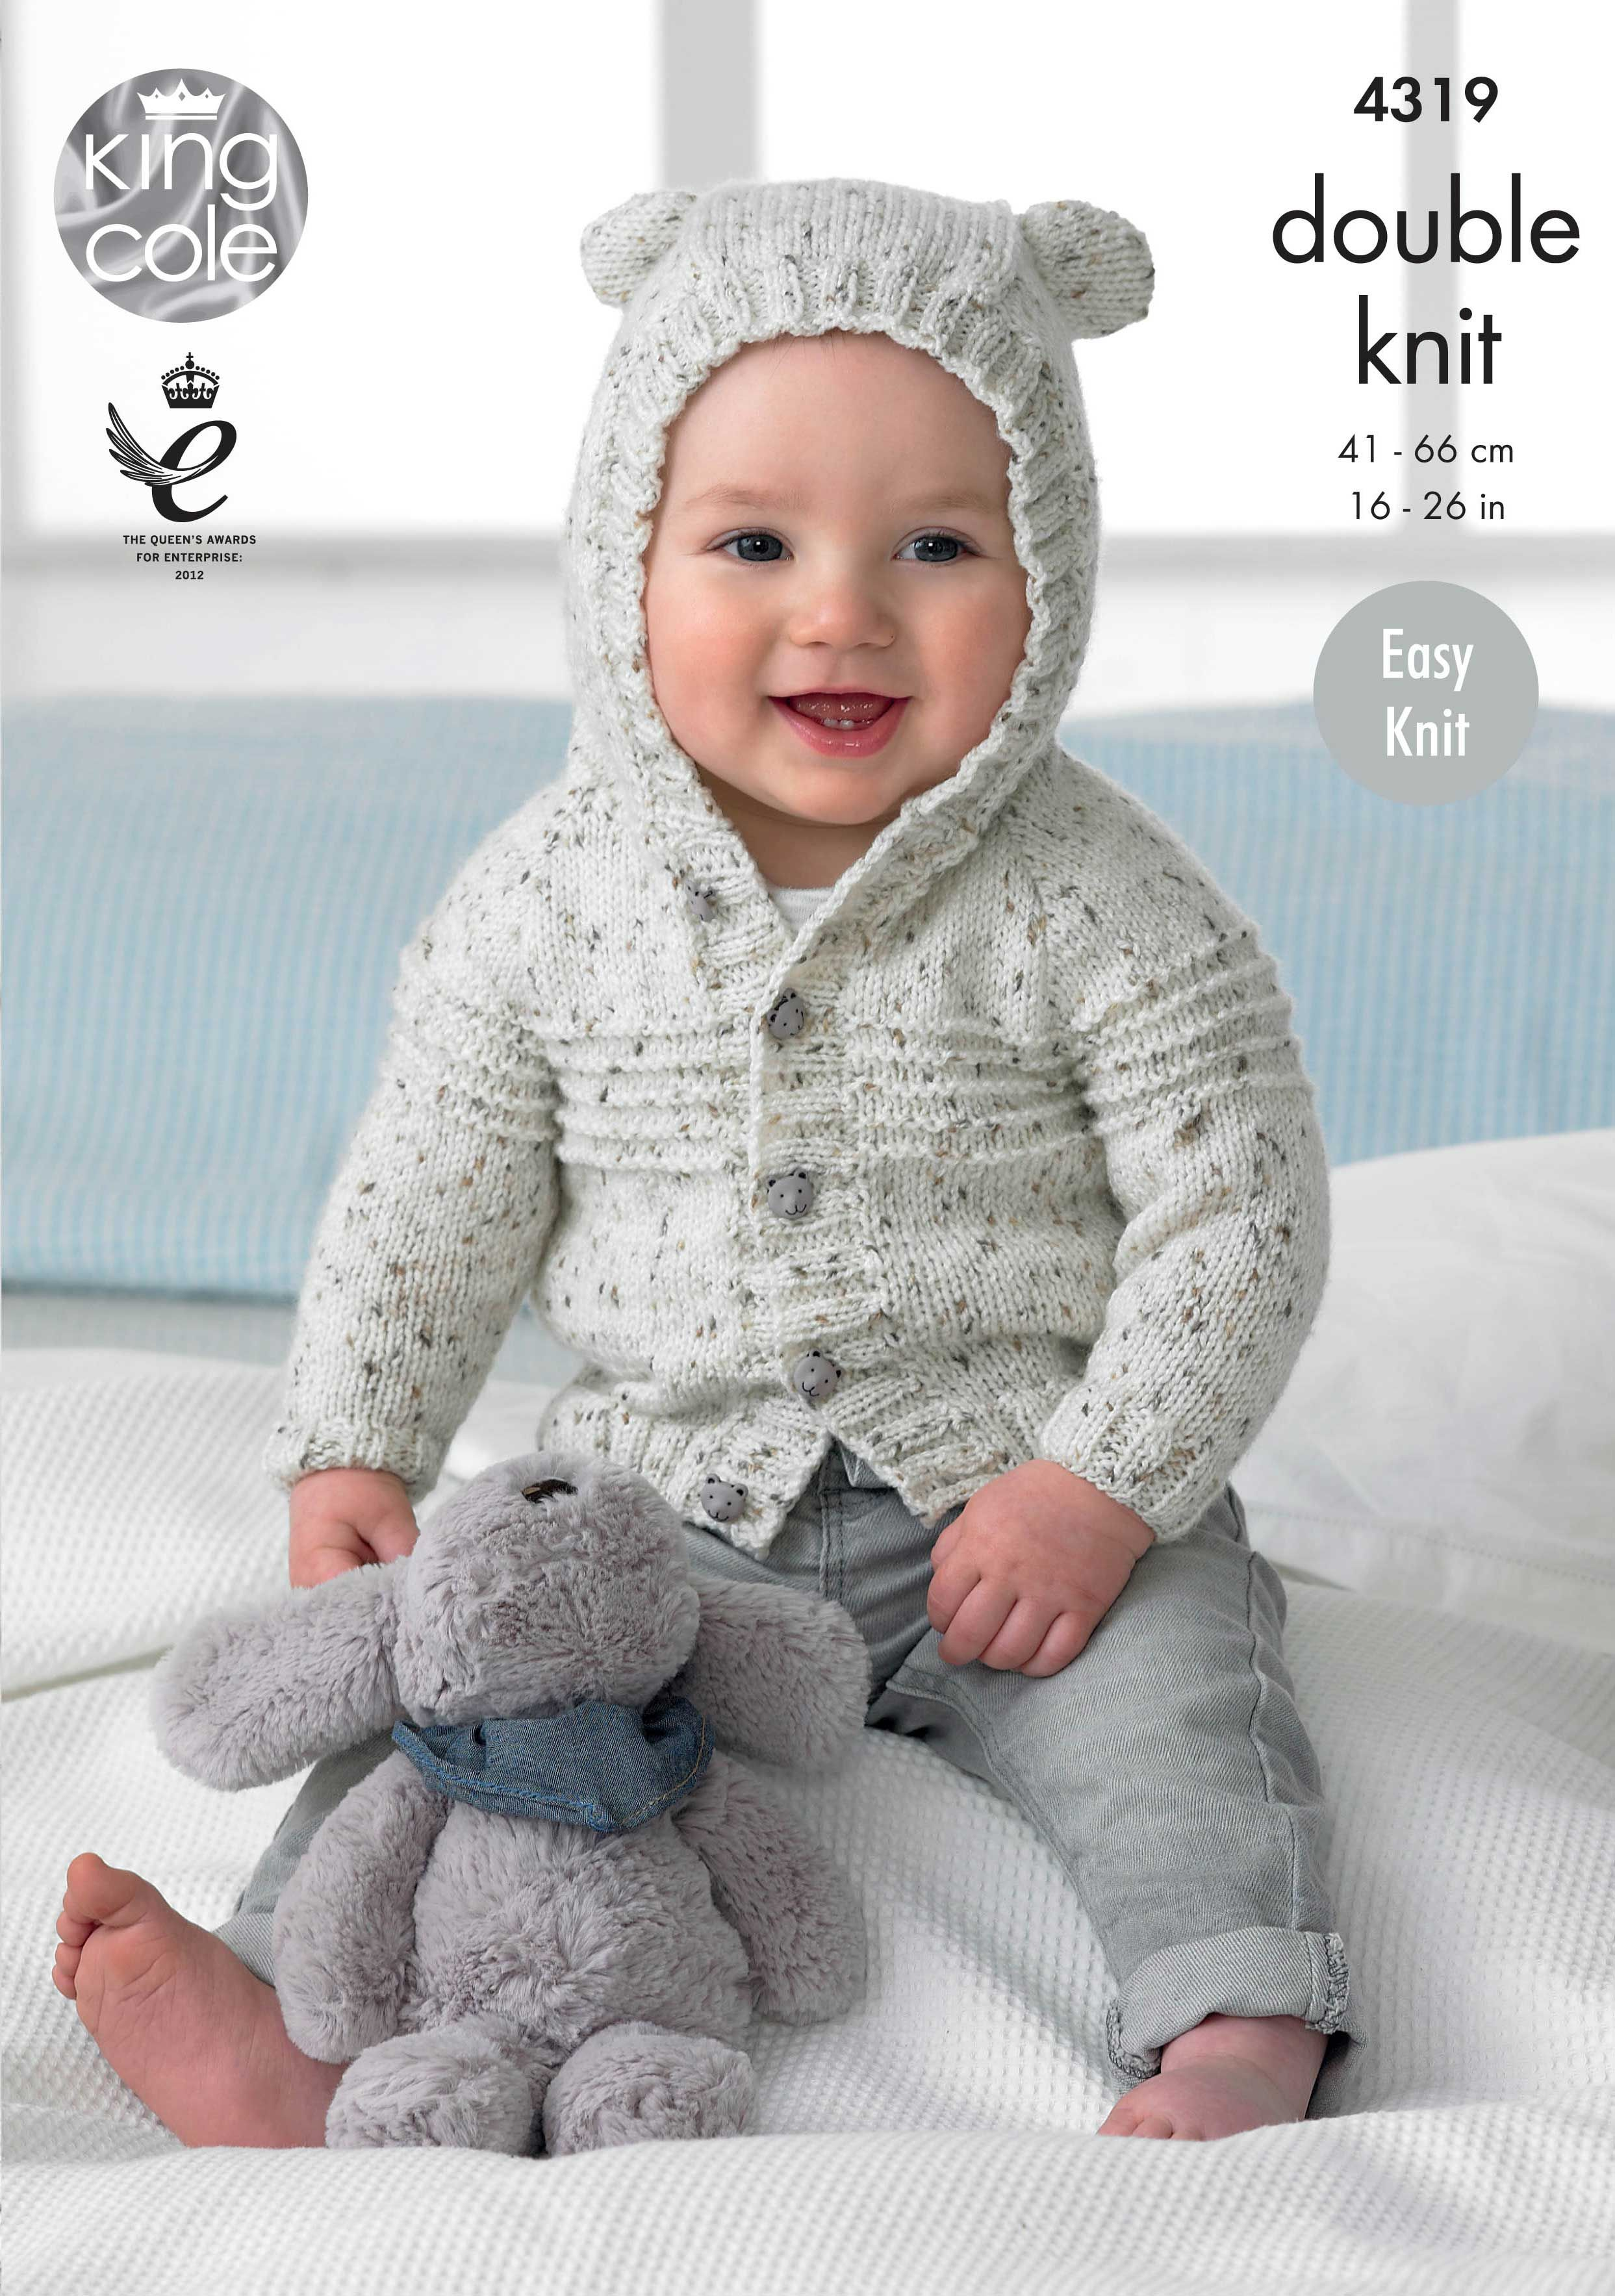 King Cole Baby Knitting Patterns Free - Polixio